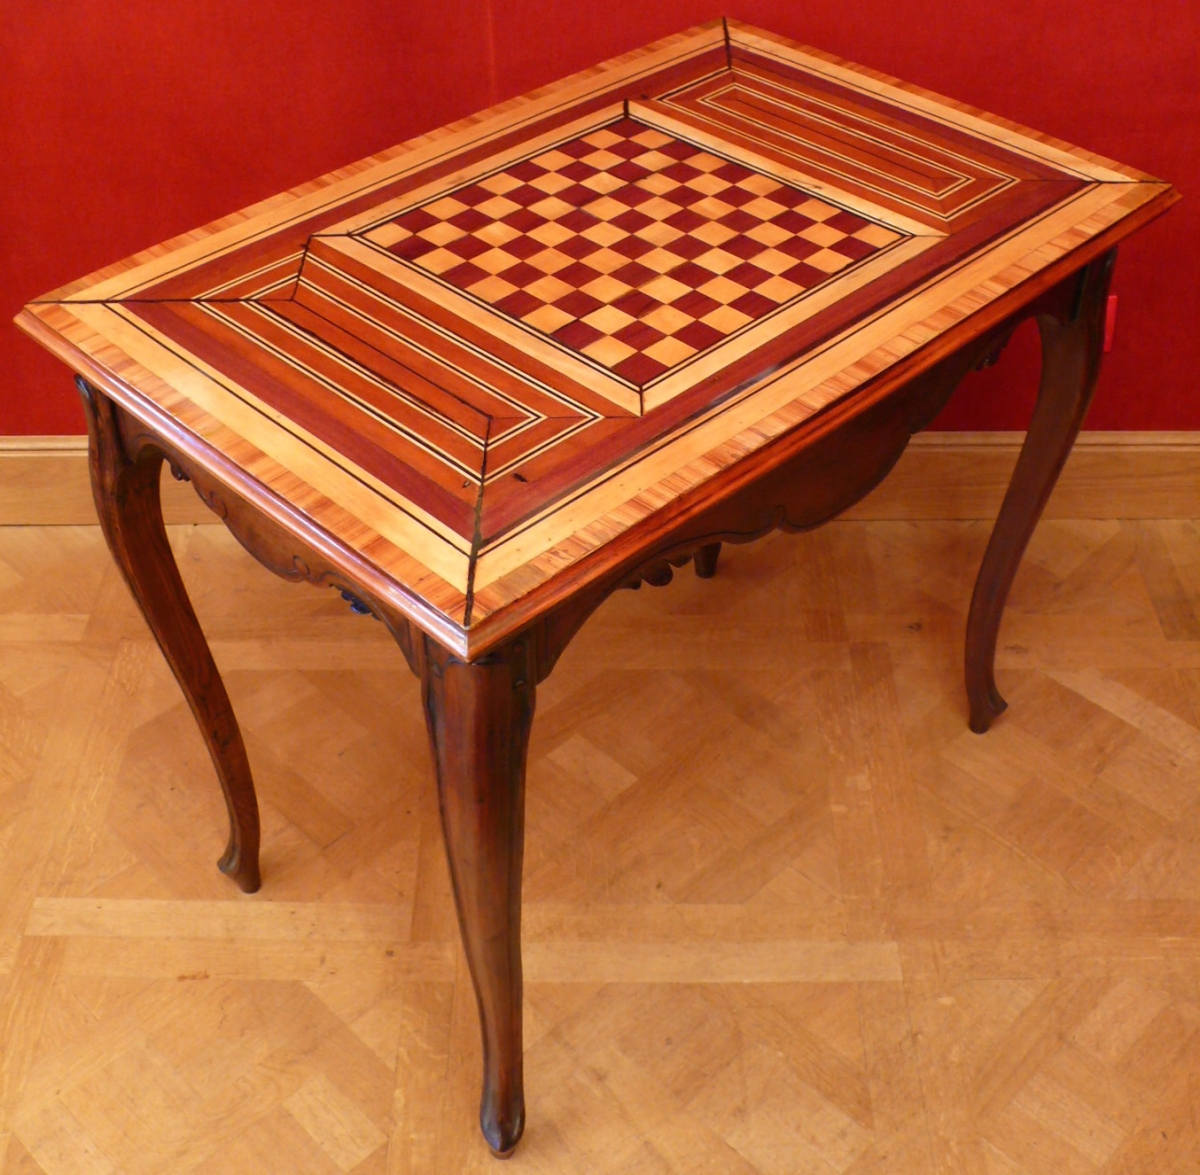 table a jeux ancienne 18e siecle style